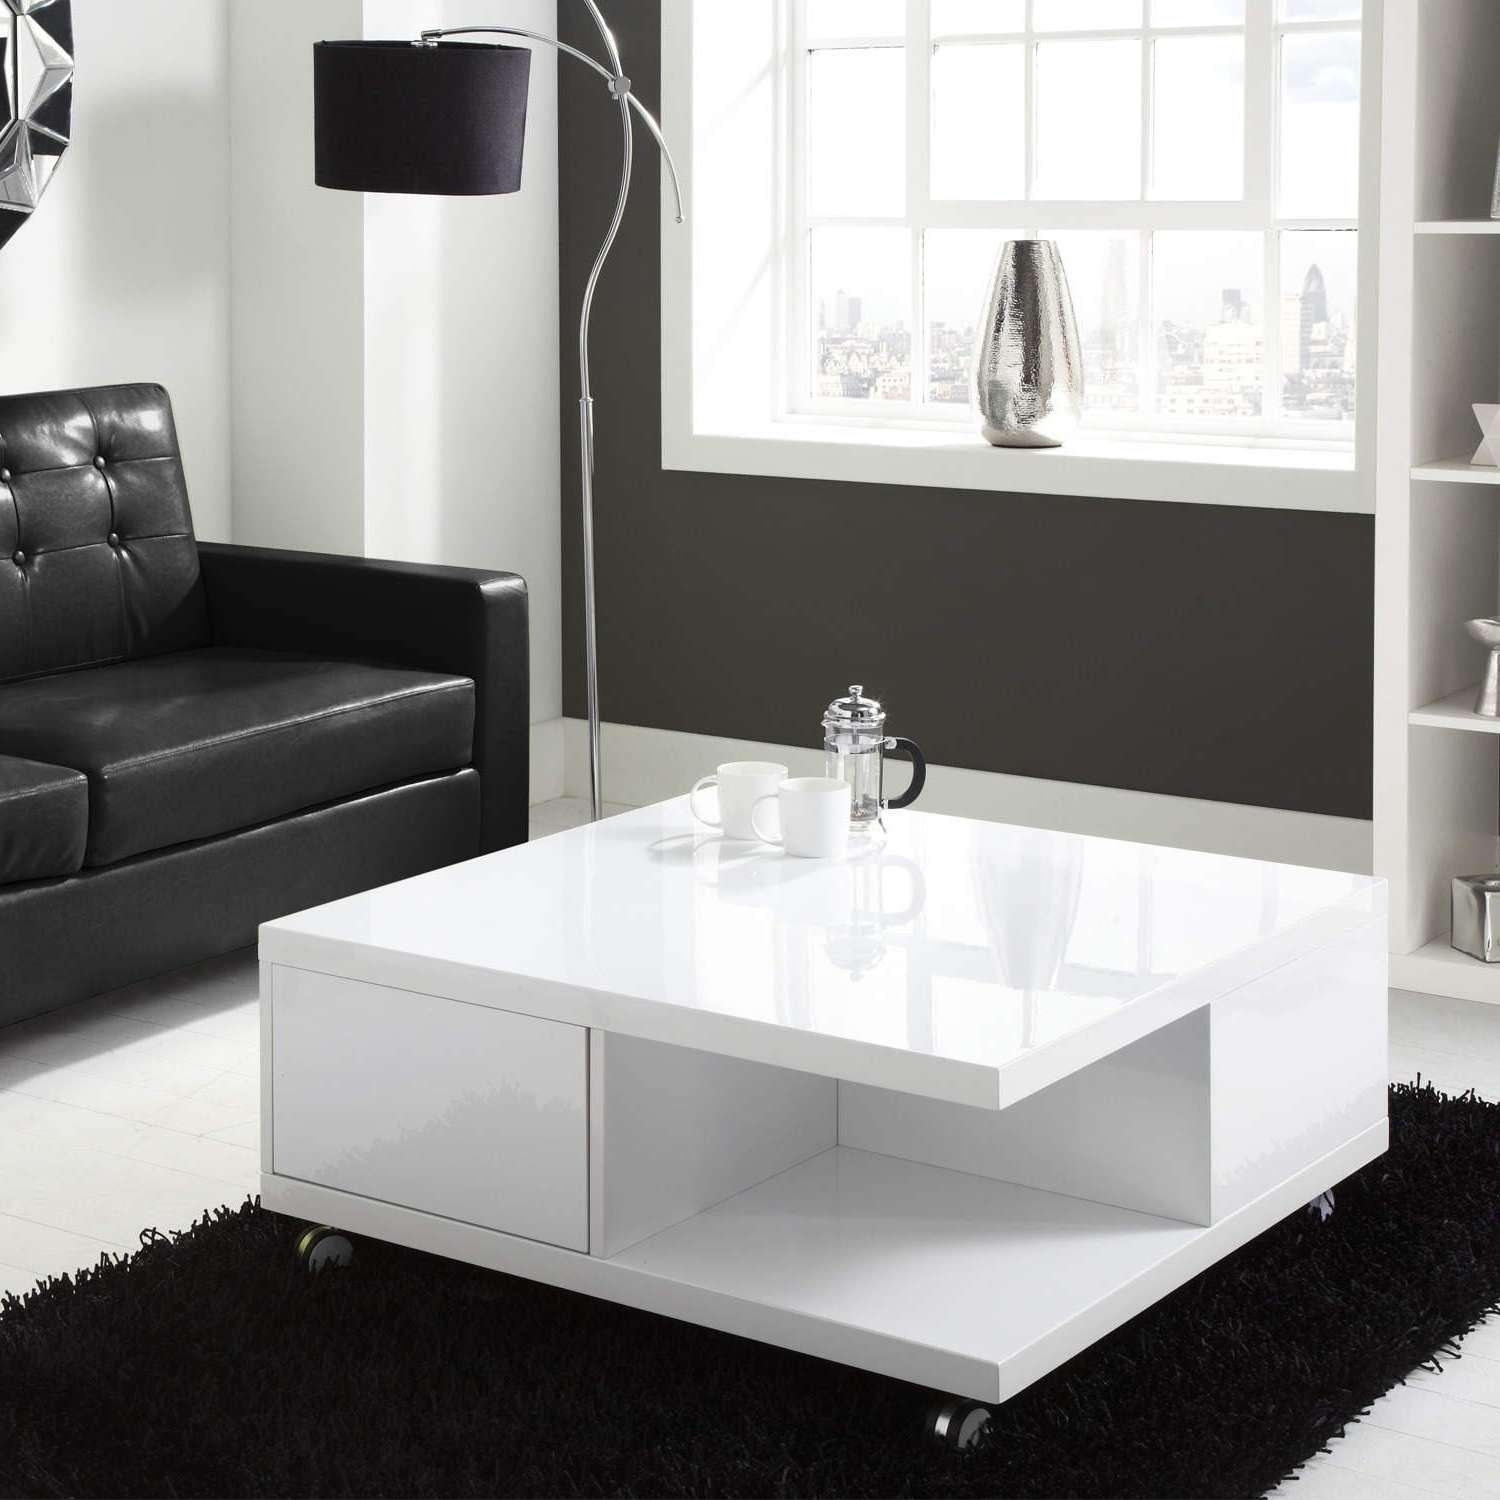 Fashionable High Gloss Coffee Tables Pertaining To Coffee Tables : Storage Table High Gloss White Coffee With Drawers (View 5 of 20)